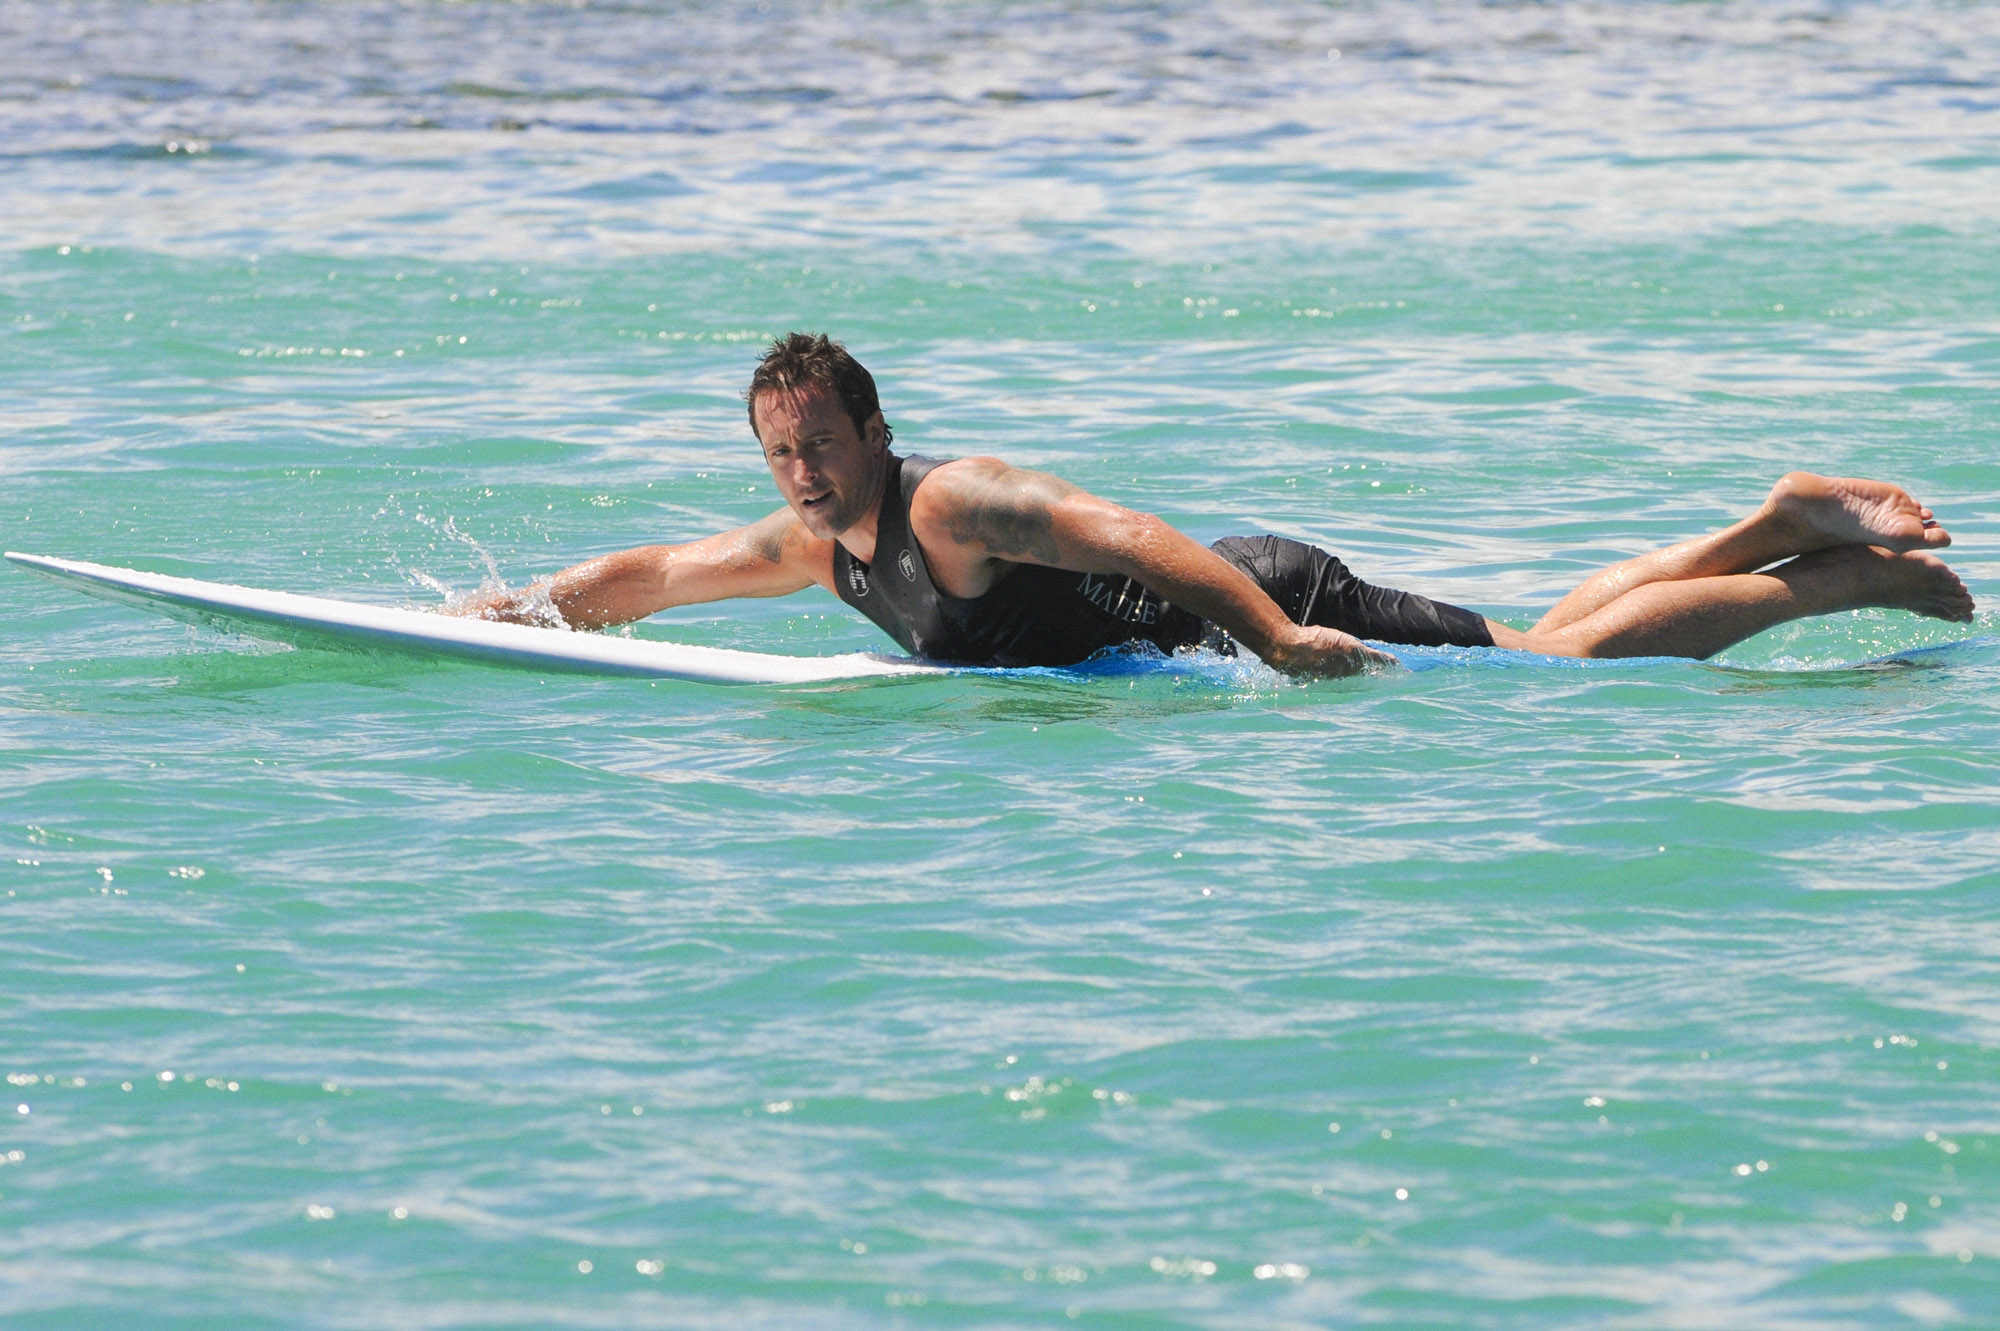 5.) He's gotten into surfing since moving to Hawaii